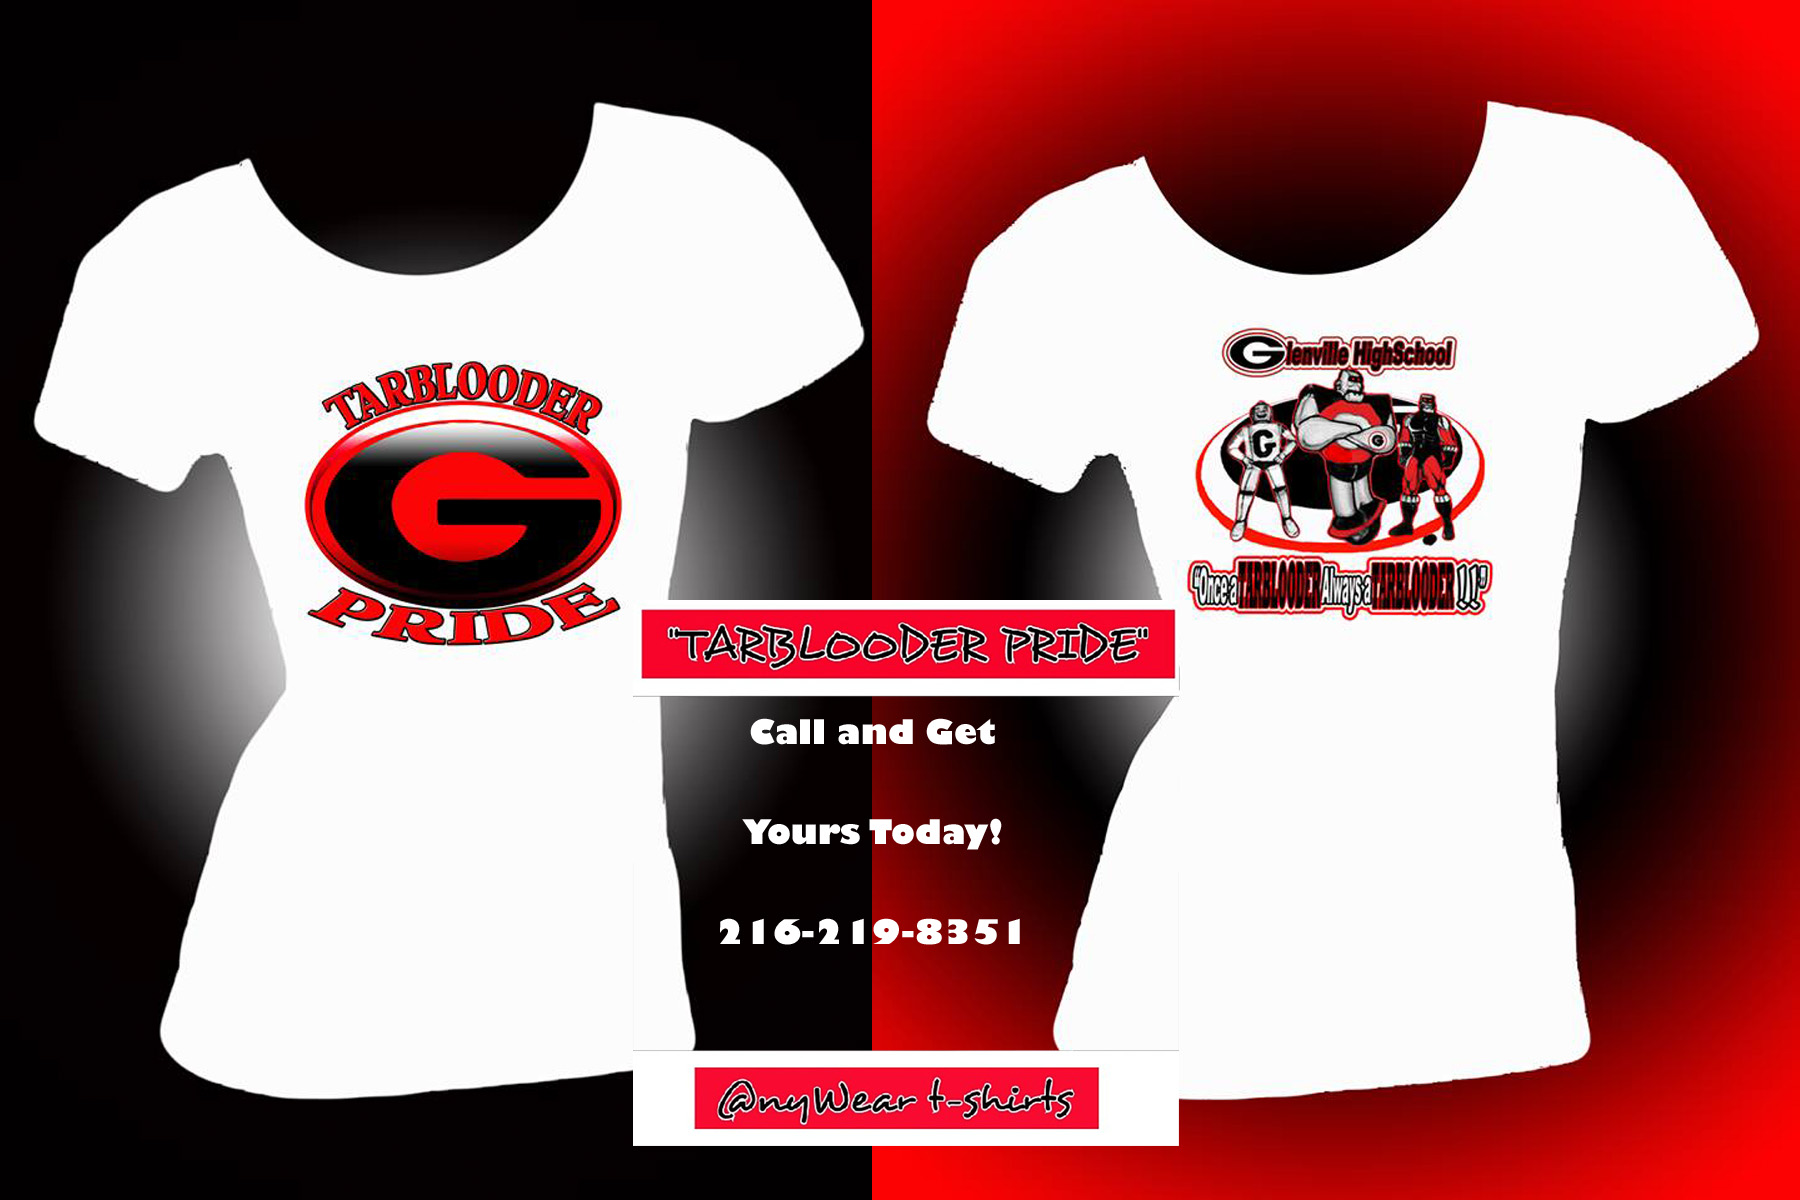 Glenville Designs By Ny Wear Tee Shirt Designs Glenville All